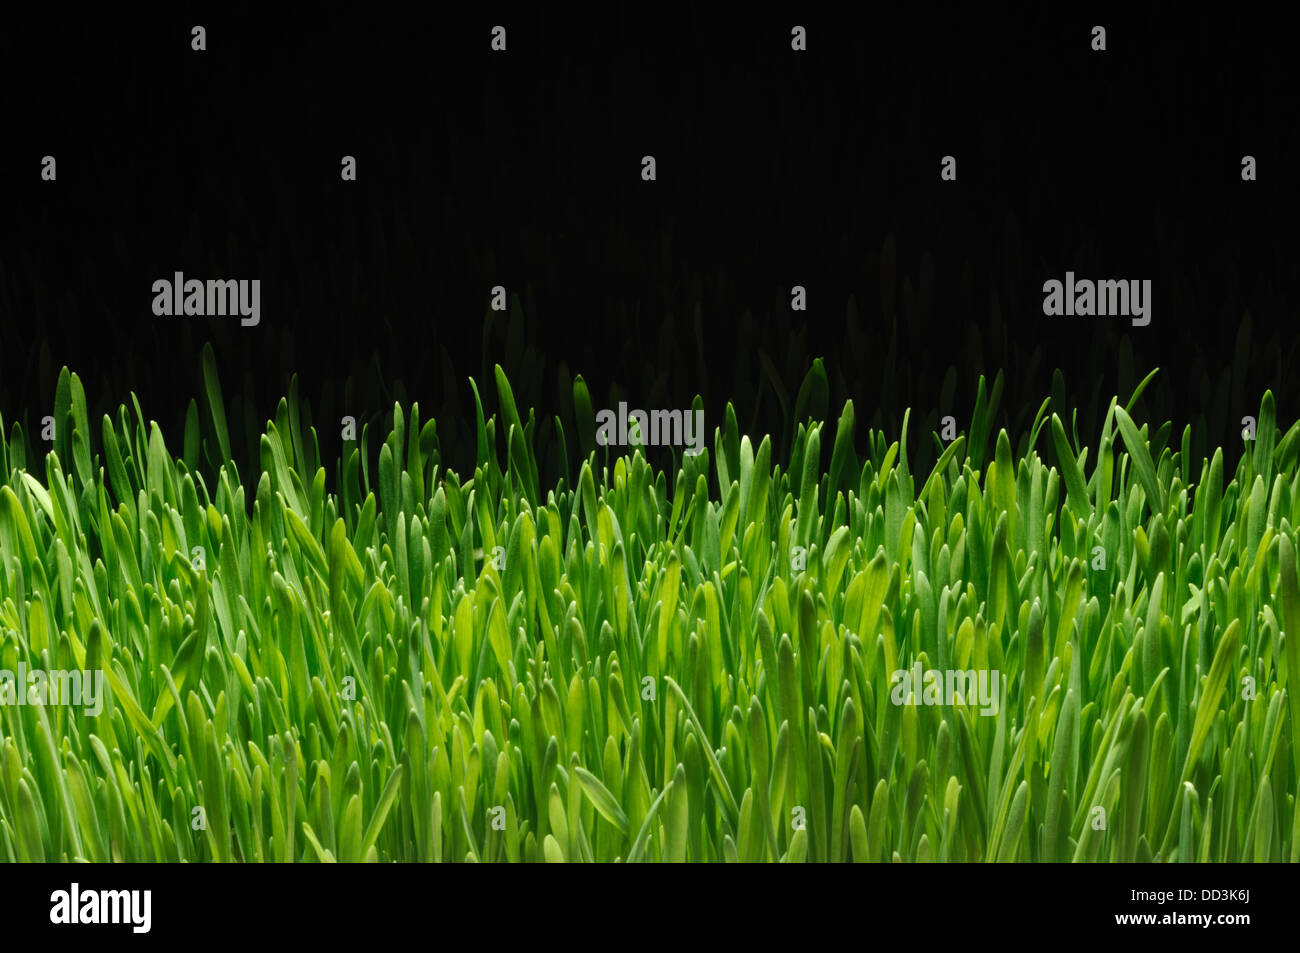 Une section de plus en plus d'herbe verte sur fond noir Photo Stock